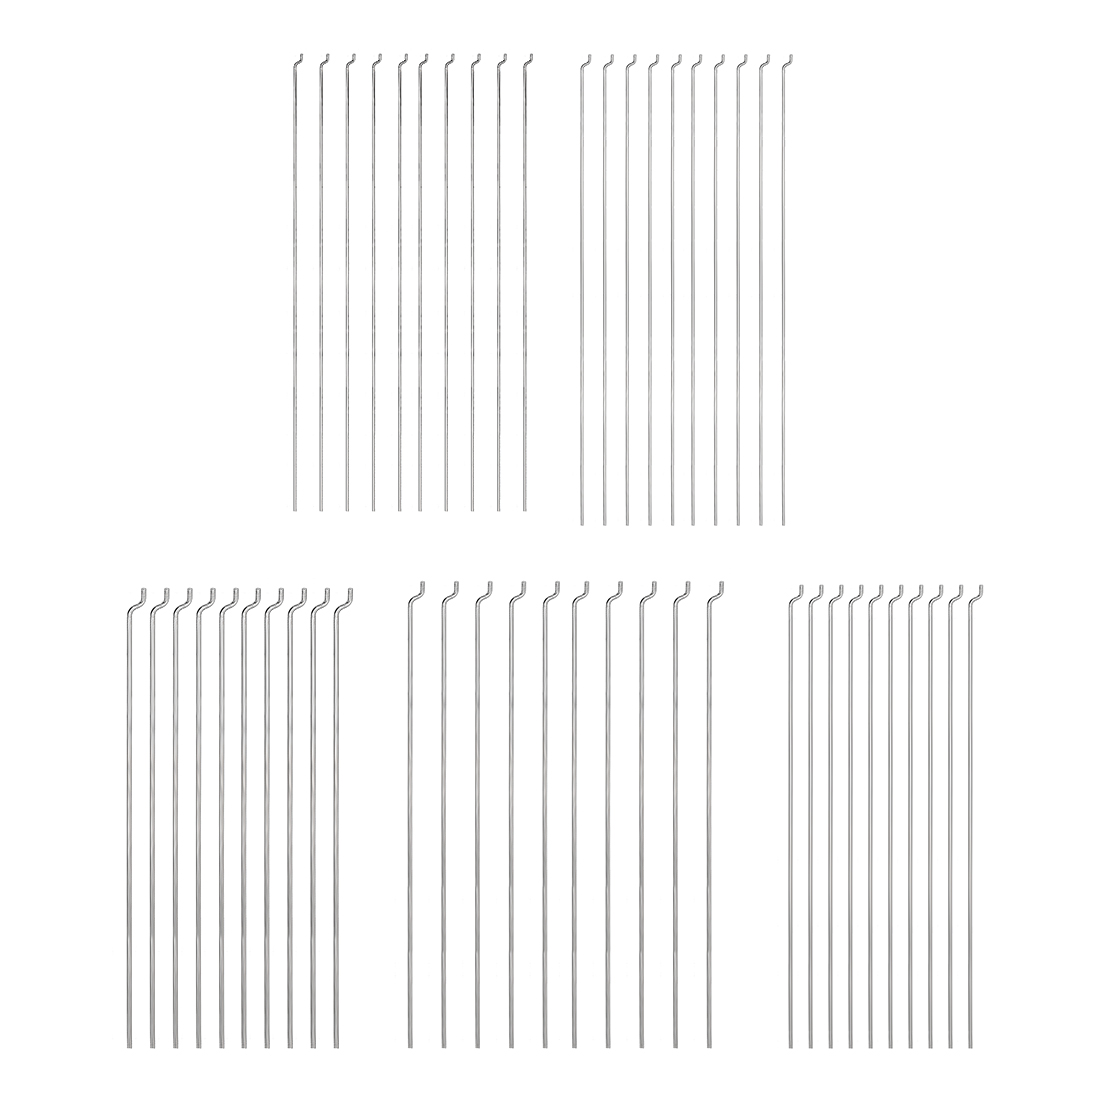 10 Inch Steel Z Pull//Push Rods Parts for RC Airplane Plane Boat Replacement uxcell 1.2mm x 260mm Pack of 10